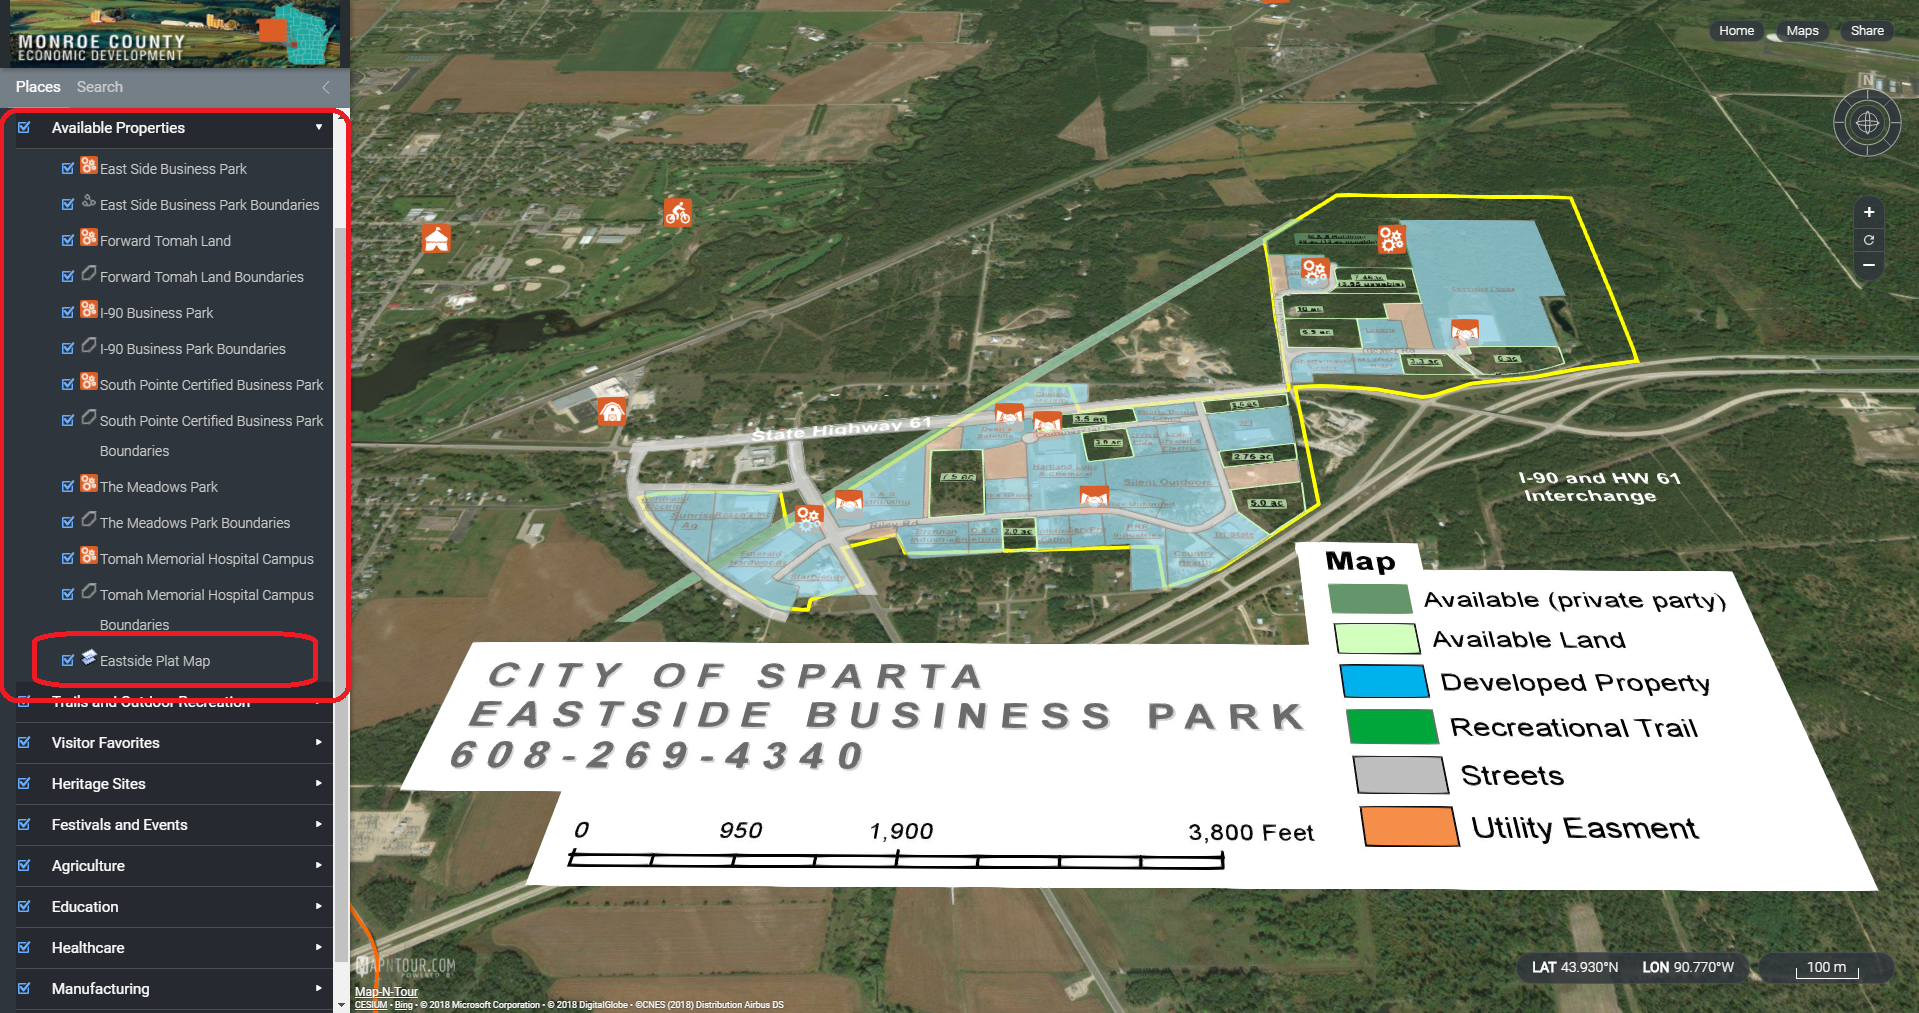 Monroe Eastside Business Park Overlay image.png